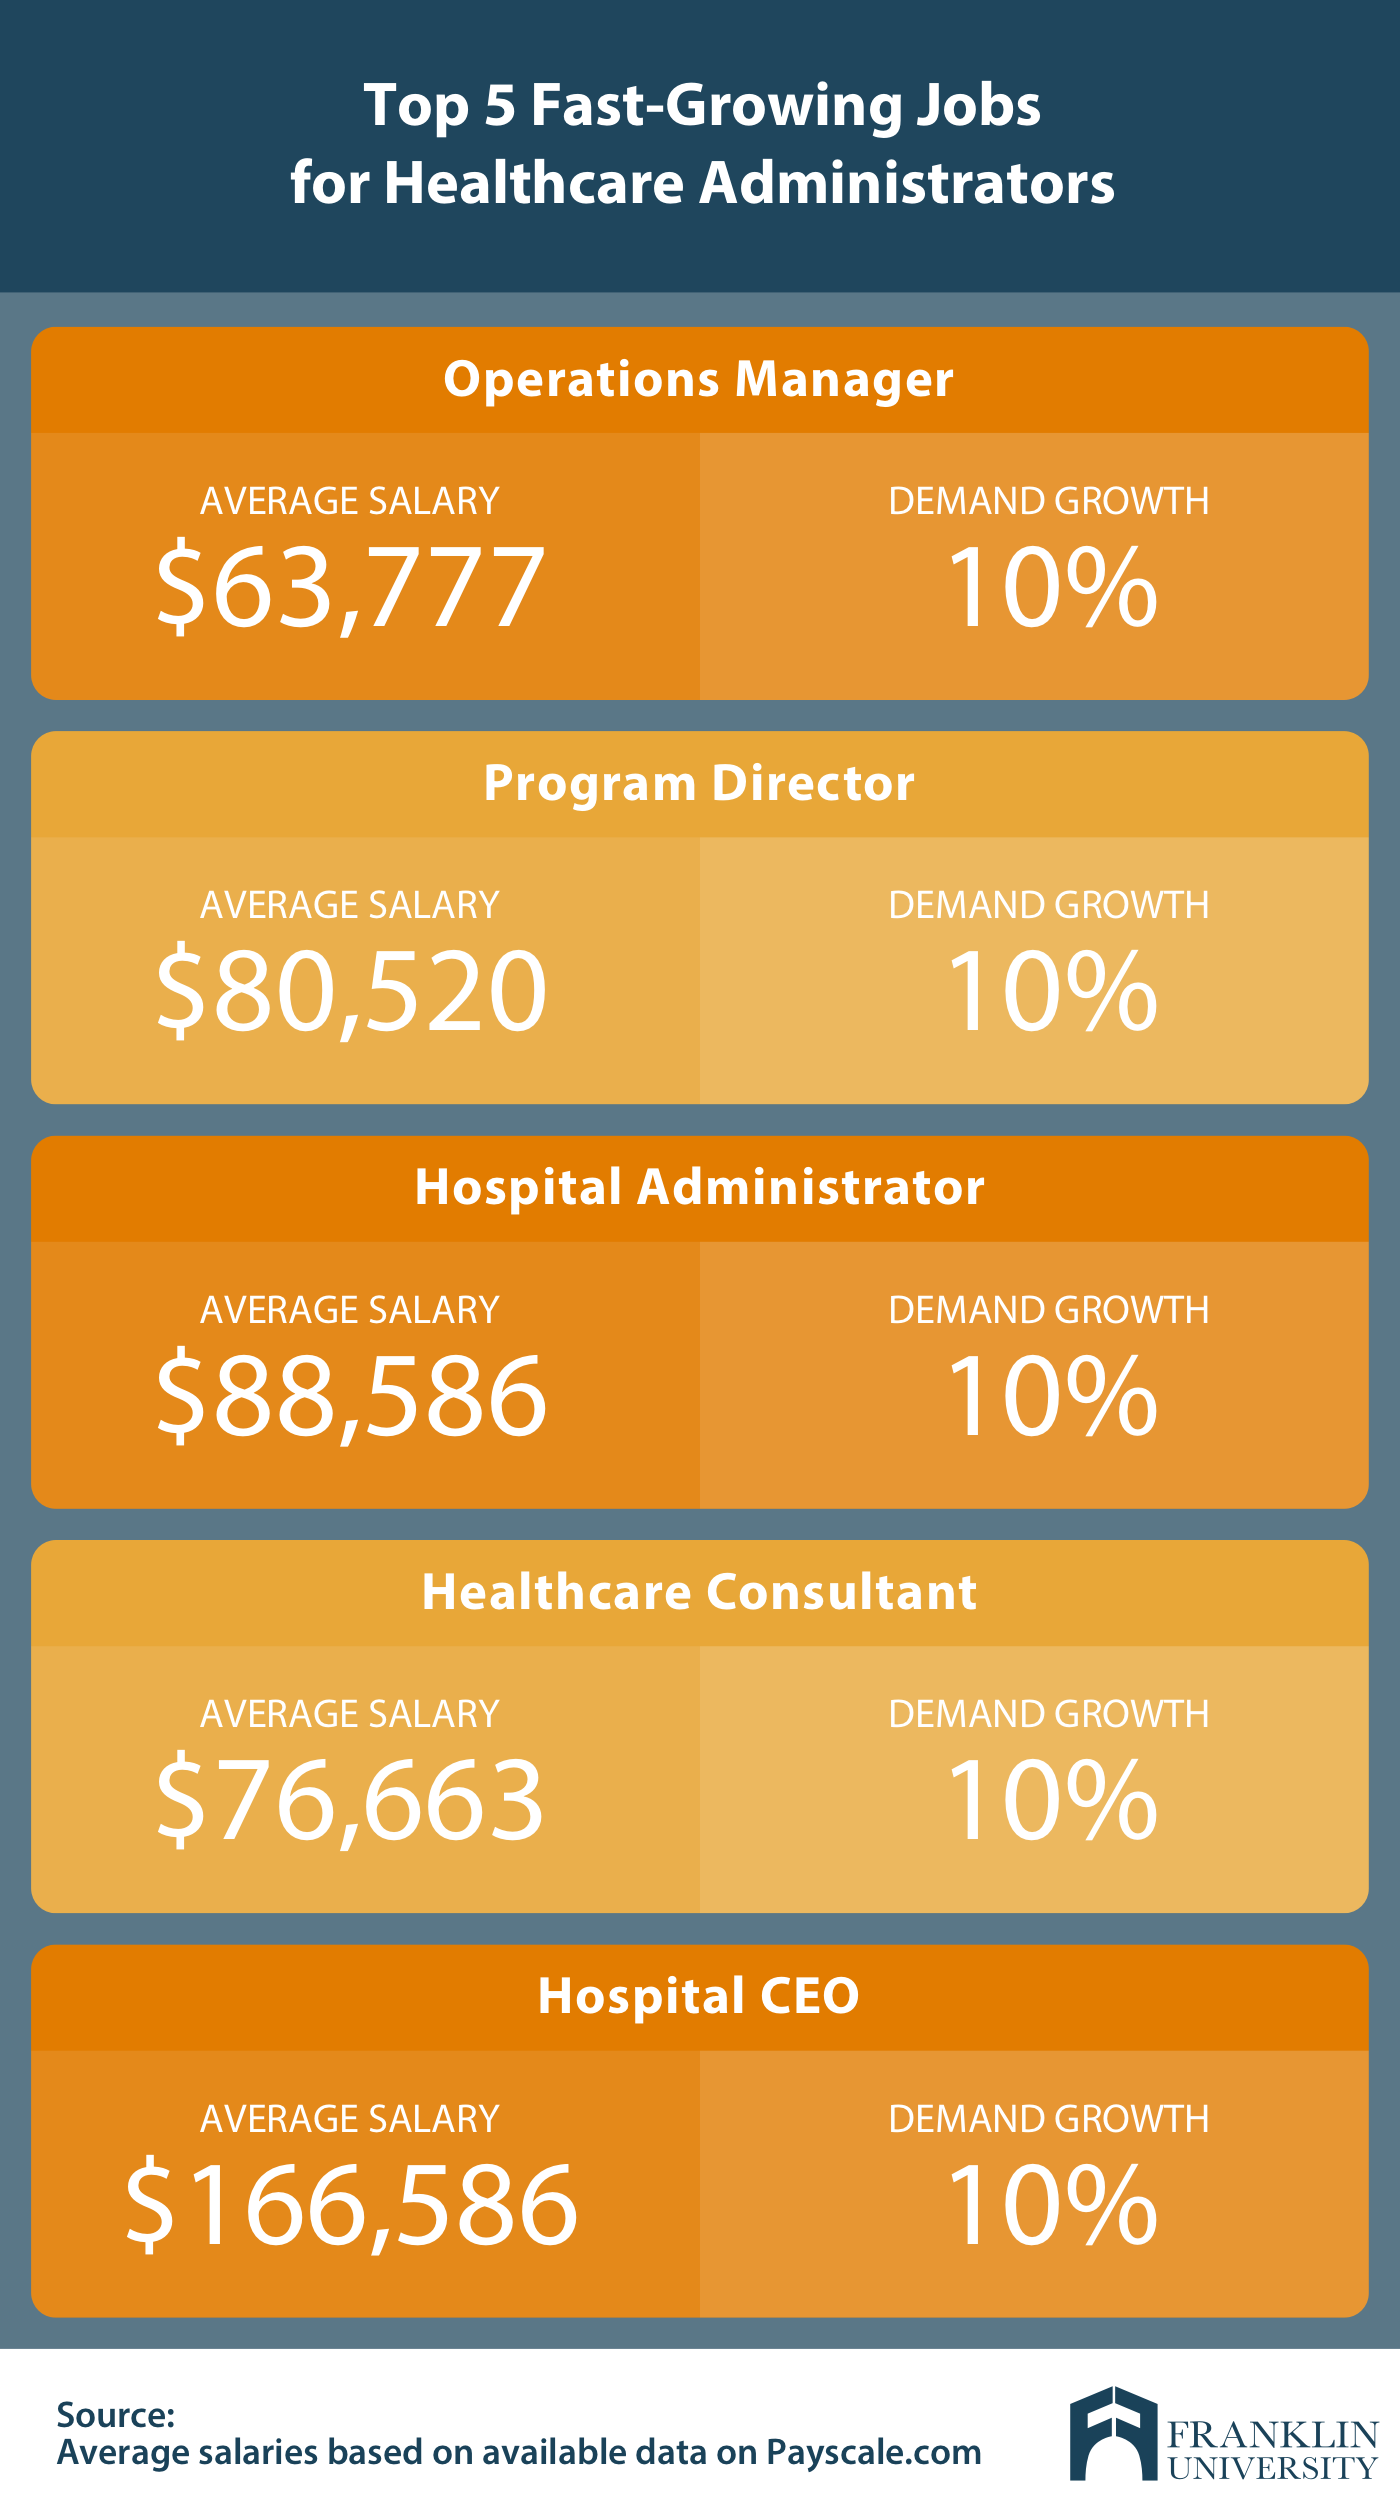 graphic describing the top 5 fast-growing jobs for healthcare administrators